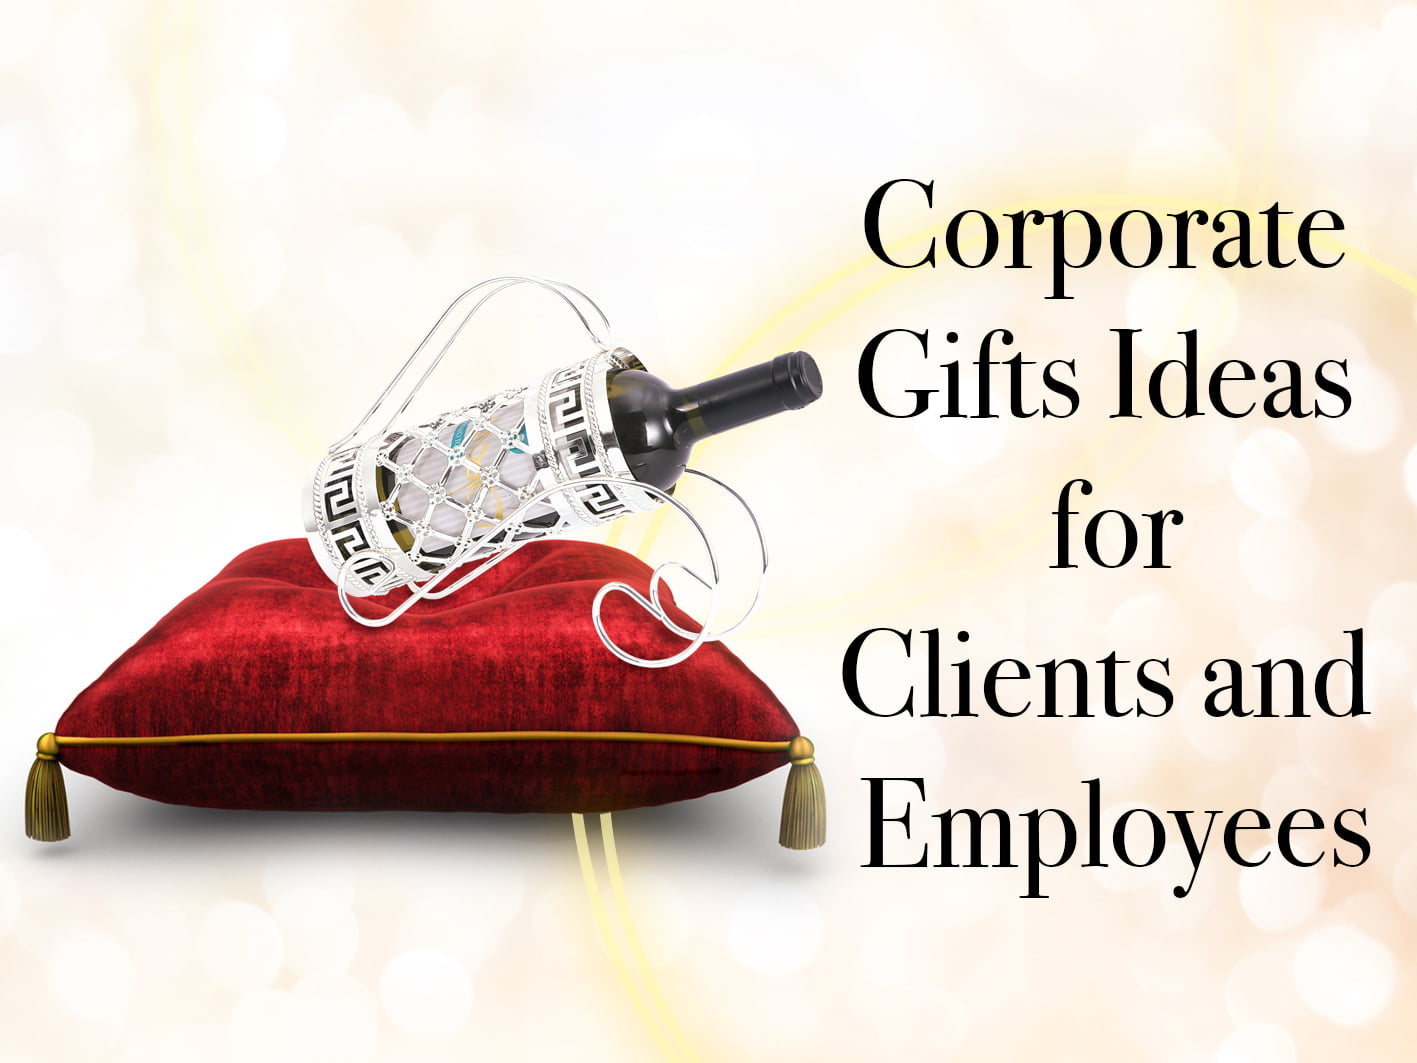 Corporate Gift Ideas For Clients And Employees